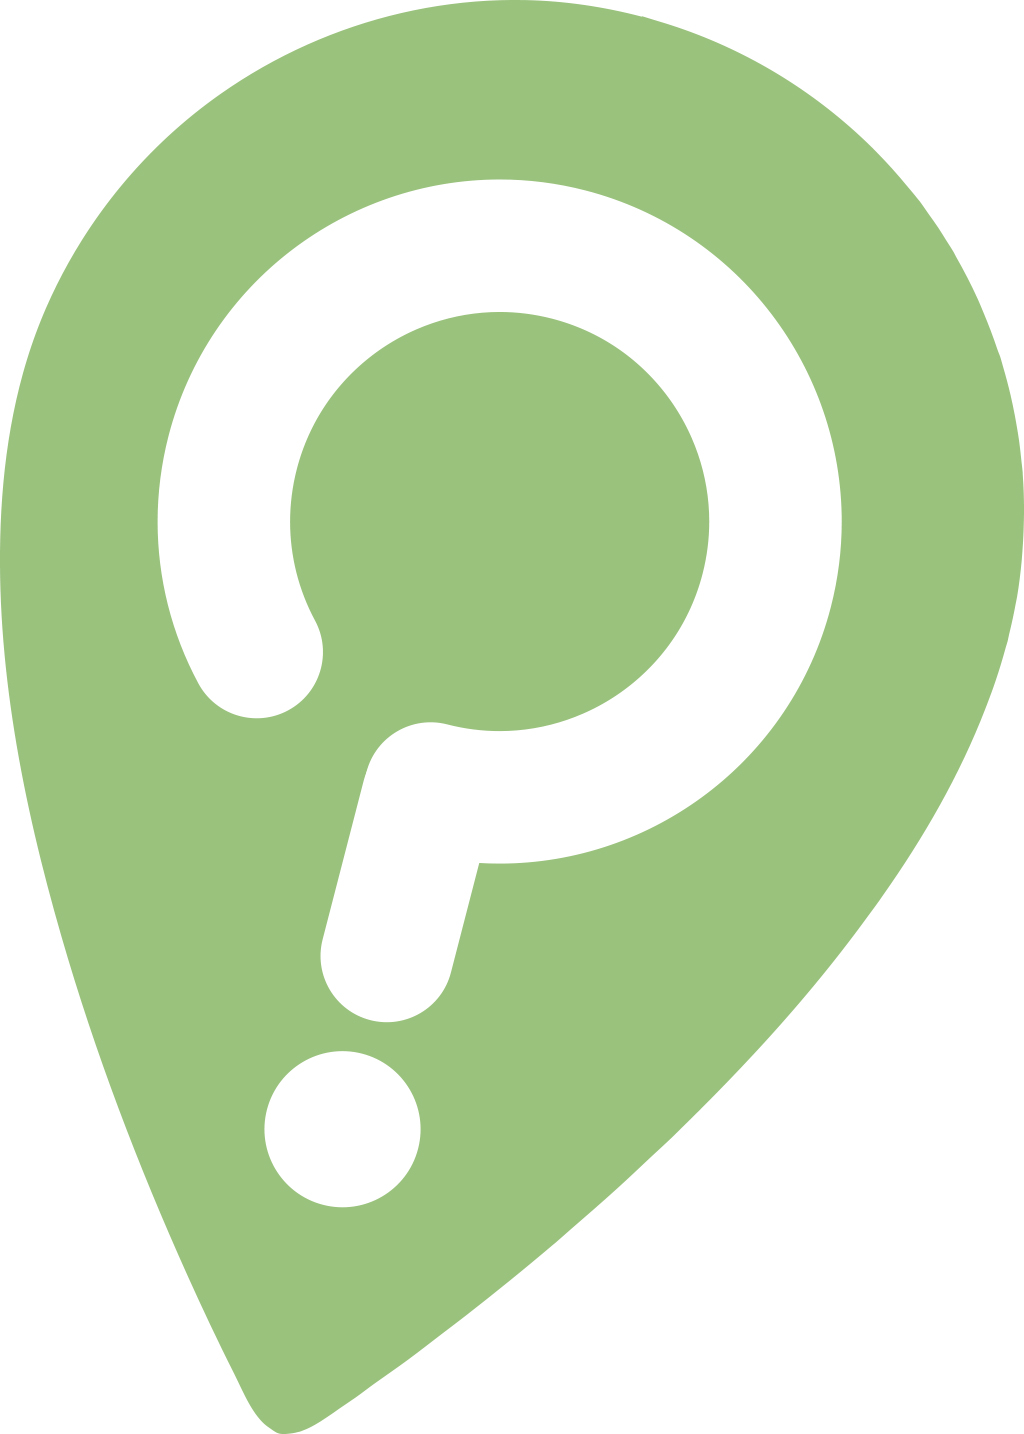 My theme and logo - The pointer/question mark logo is designed to encourage churches to prayerfully ask, 'where are we right now?' and 'what are the best directions to take from here?'